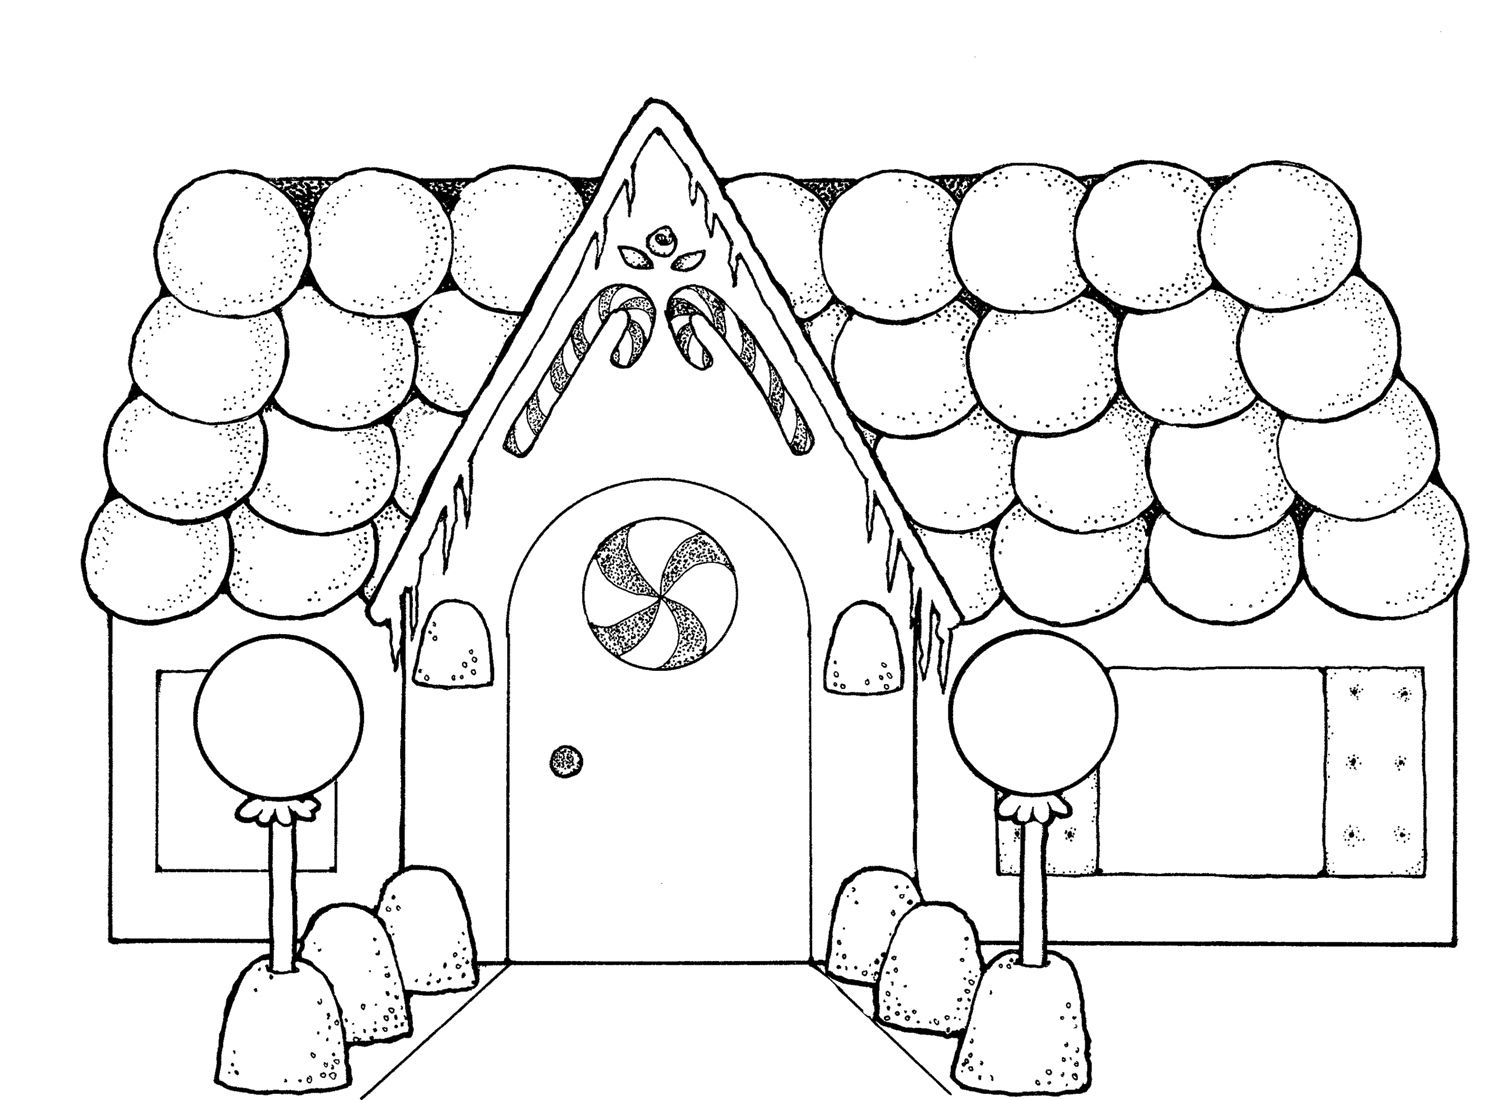 Cute Gingerbread Houses Coloring Page | sewing | Pinterest ...